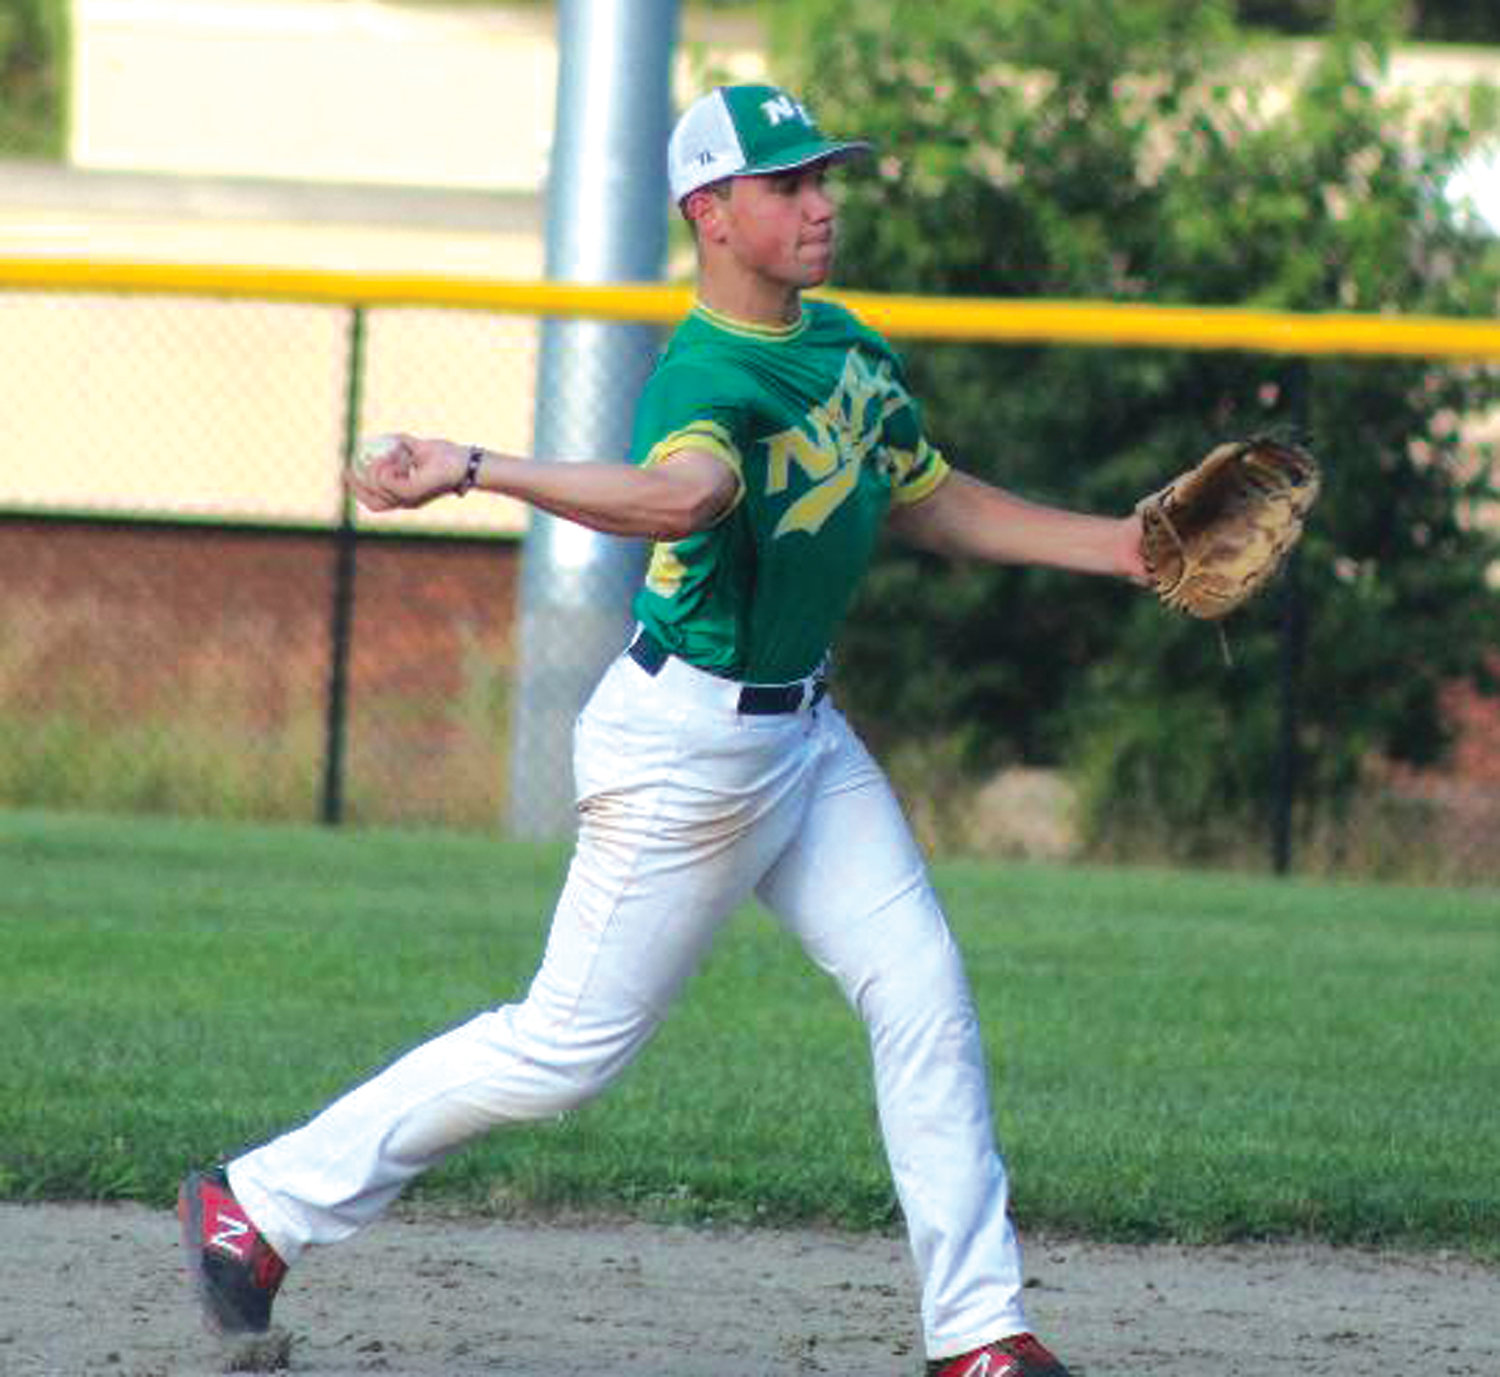 PLAYING THE FIELD: NEFL's Christian Rapoza fires to first base in Woonsocket.